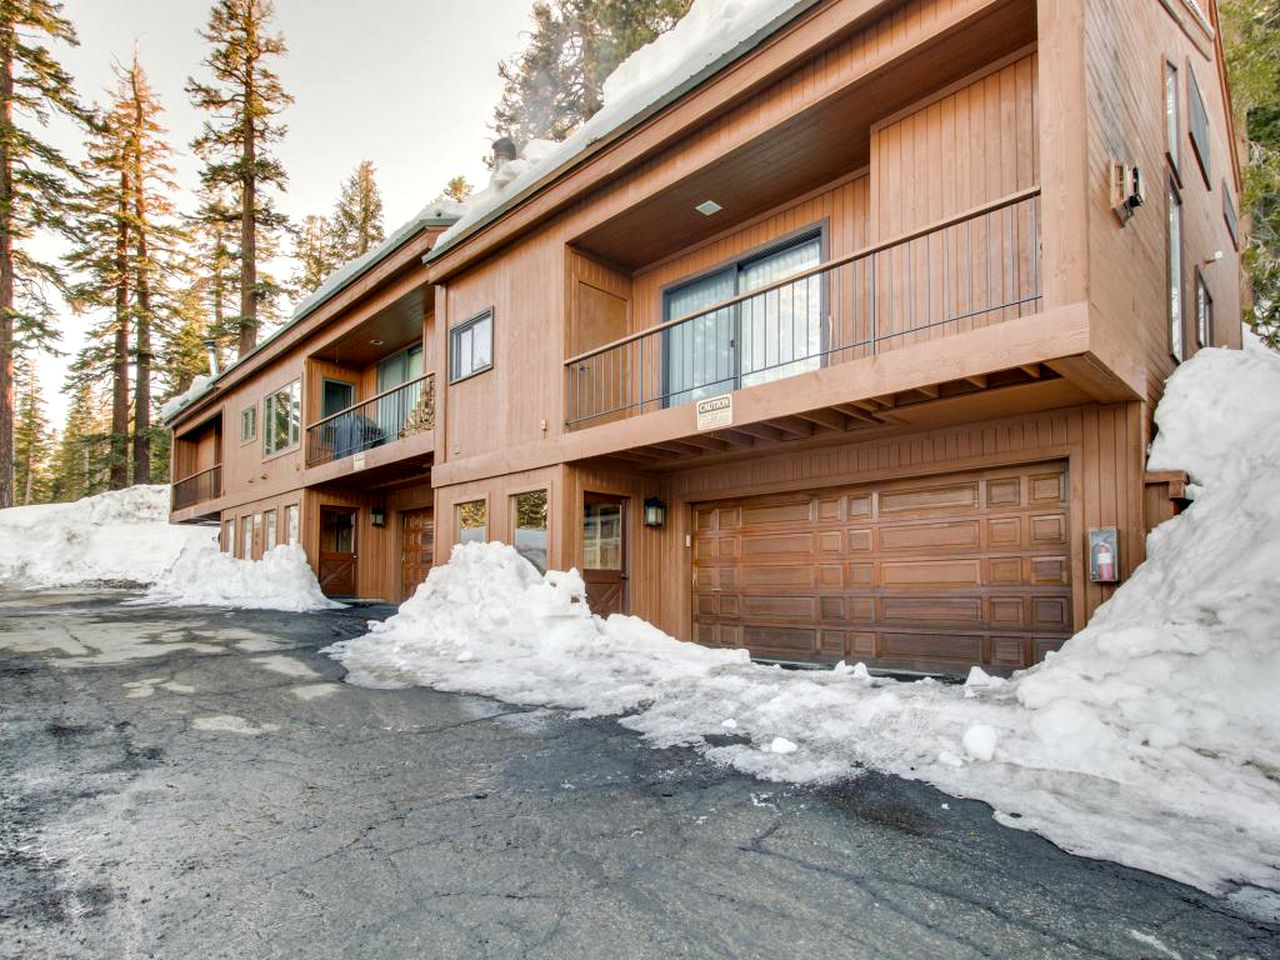 Cabins (Mammoth Lakes, California, United States)